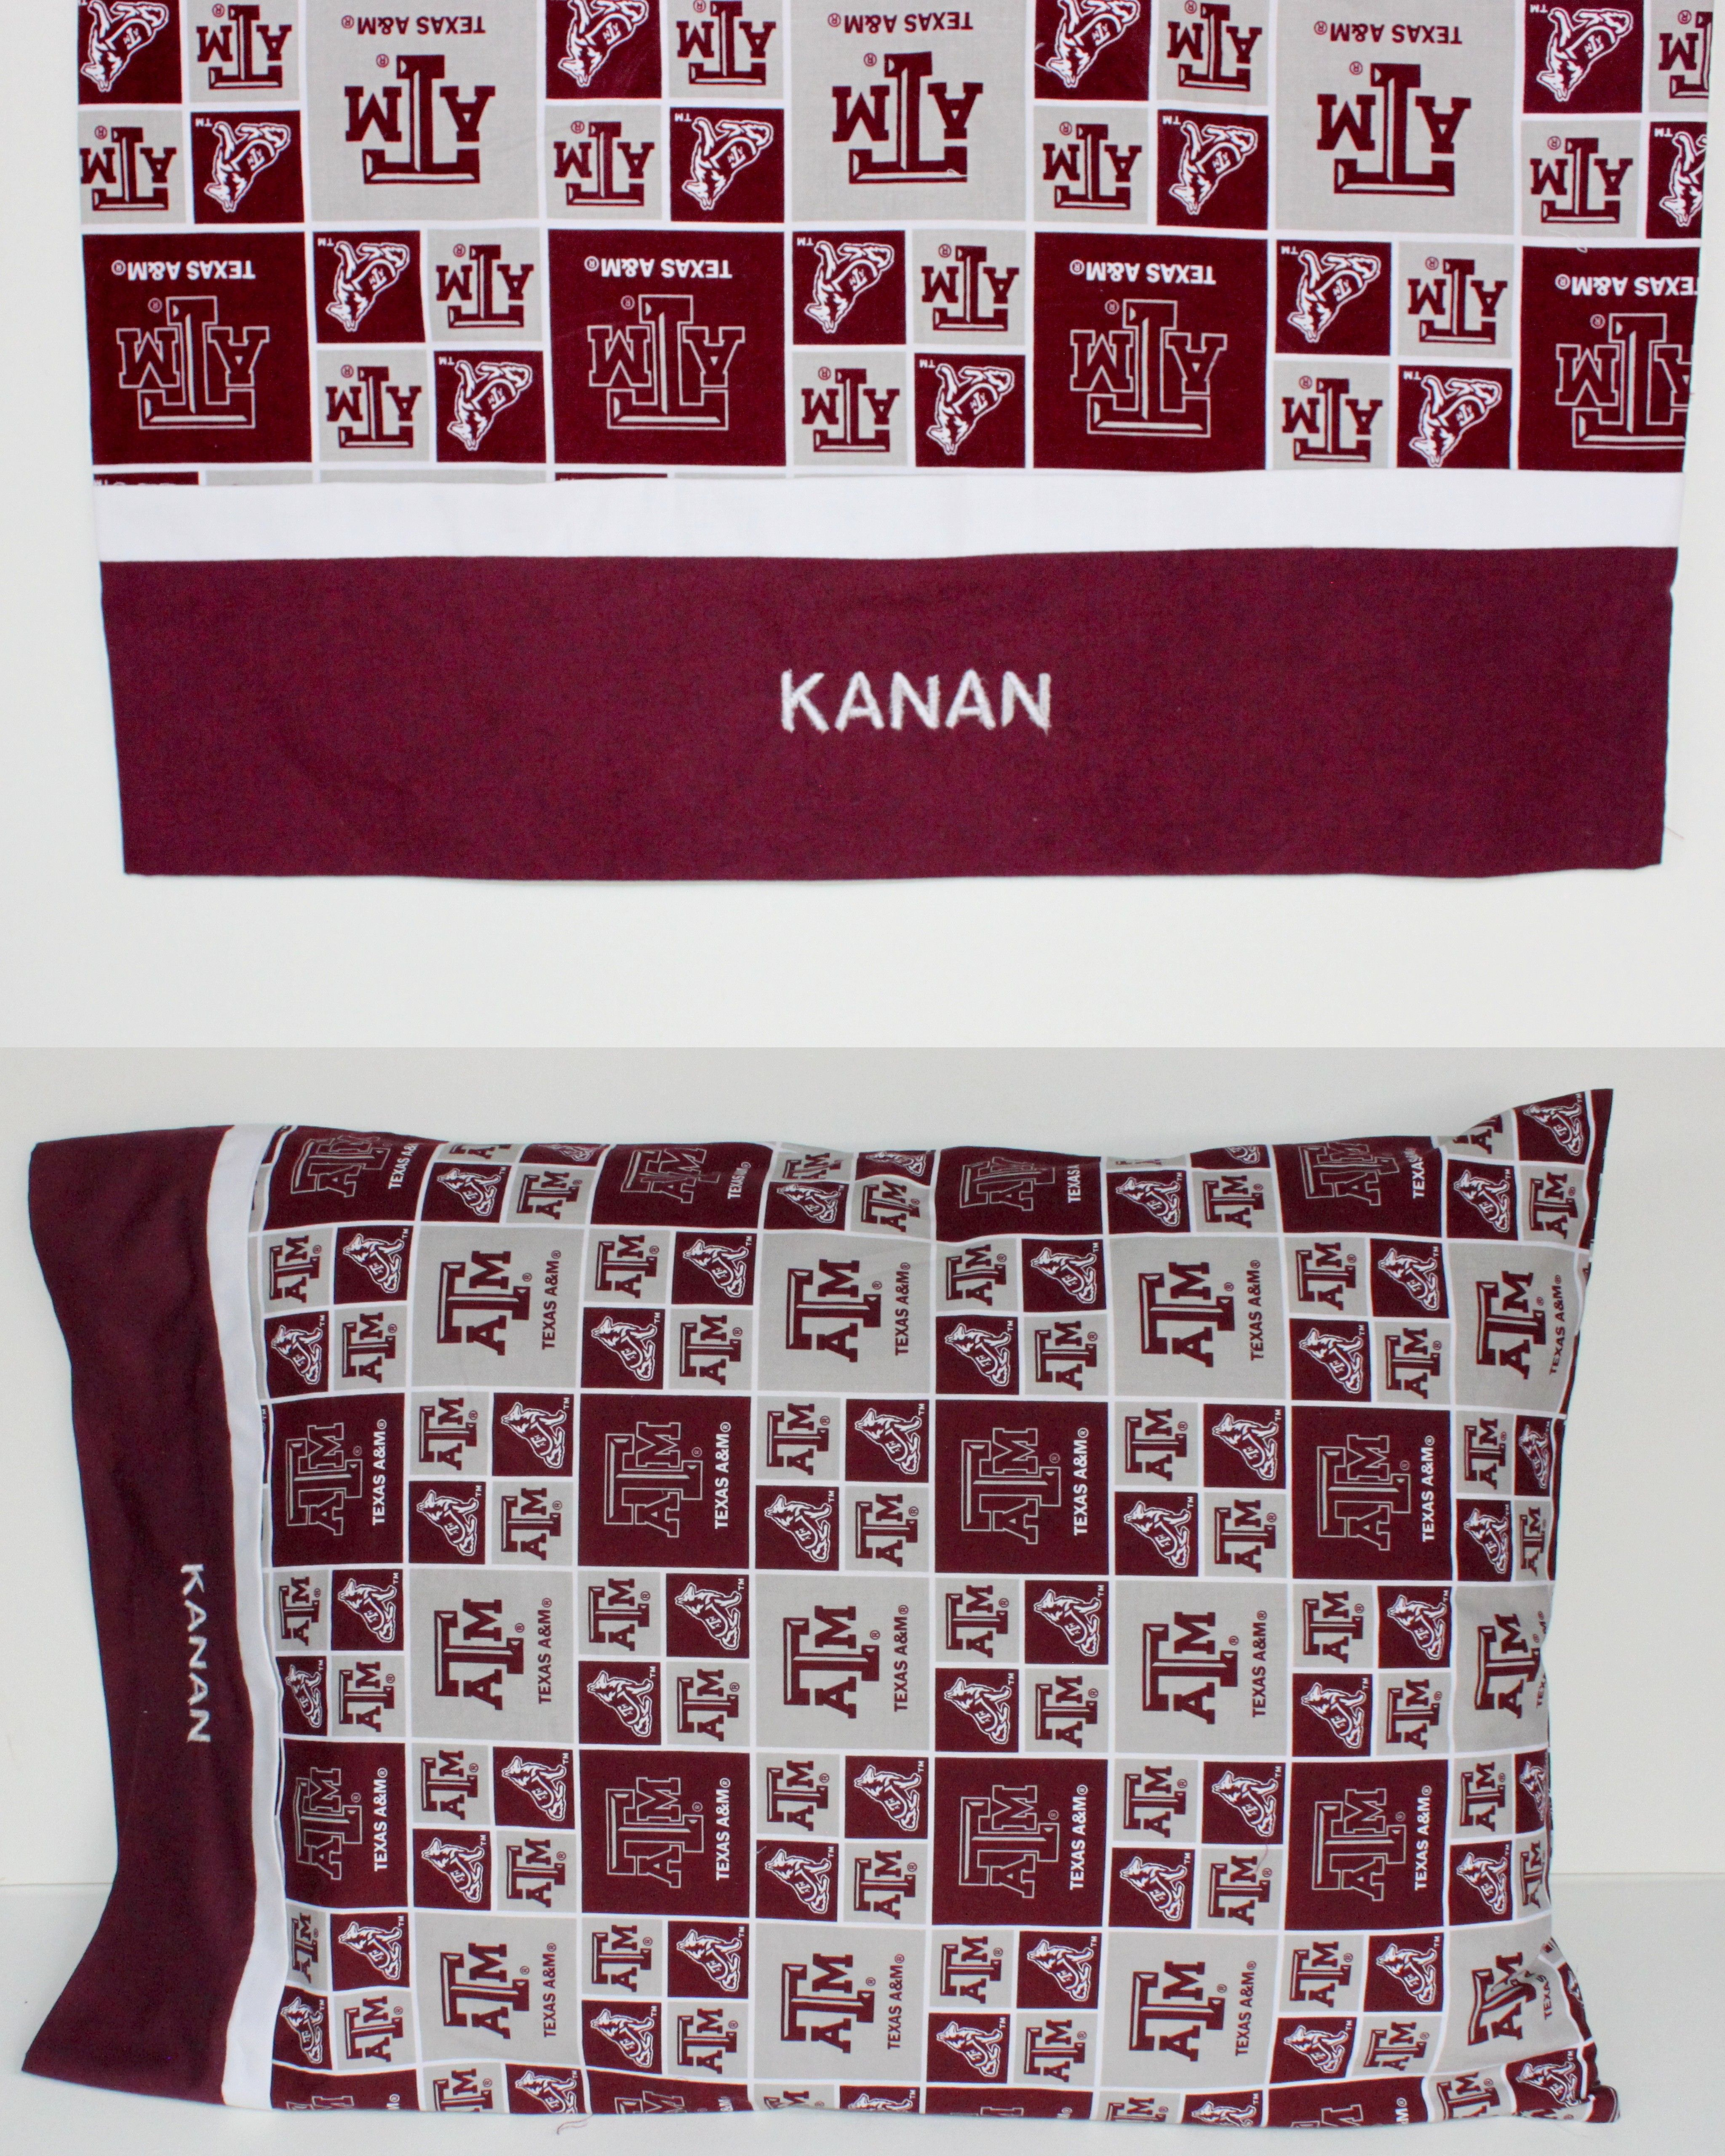 pillowcase cases stay bed products customized set saty pillow s let cole in pico pc lets charlie